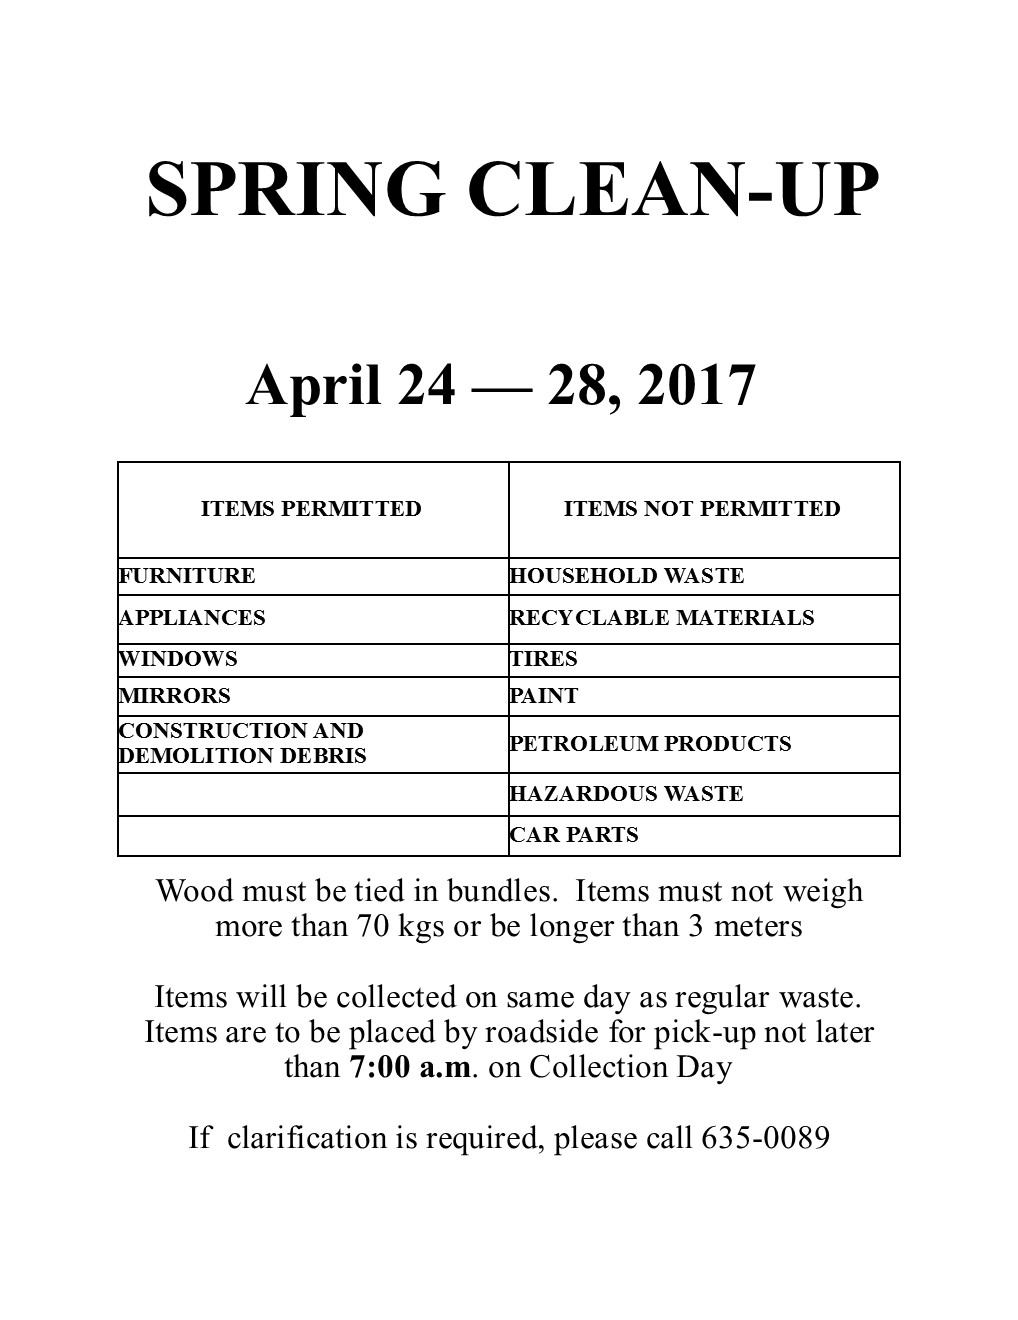 SpringCleanUp17